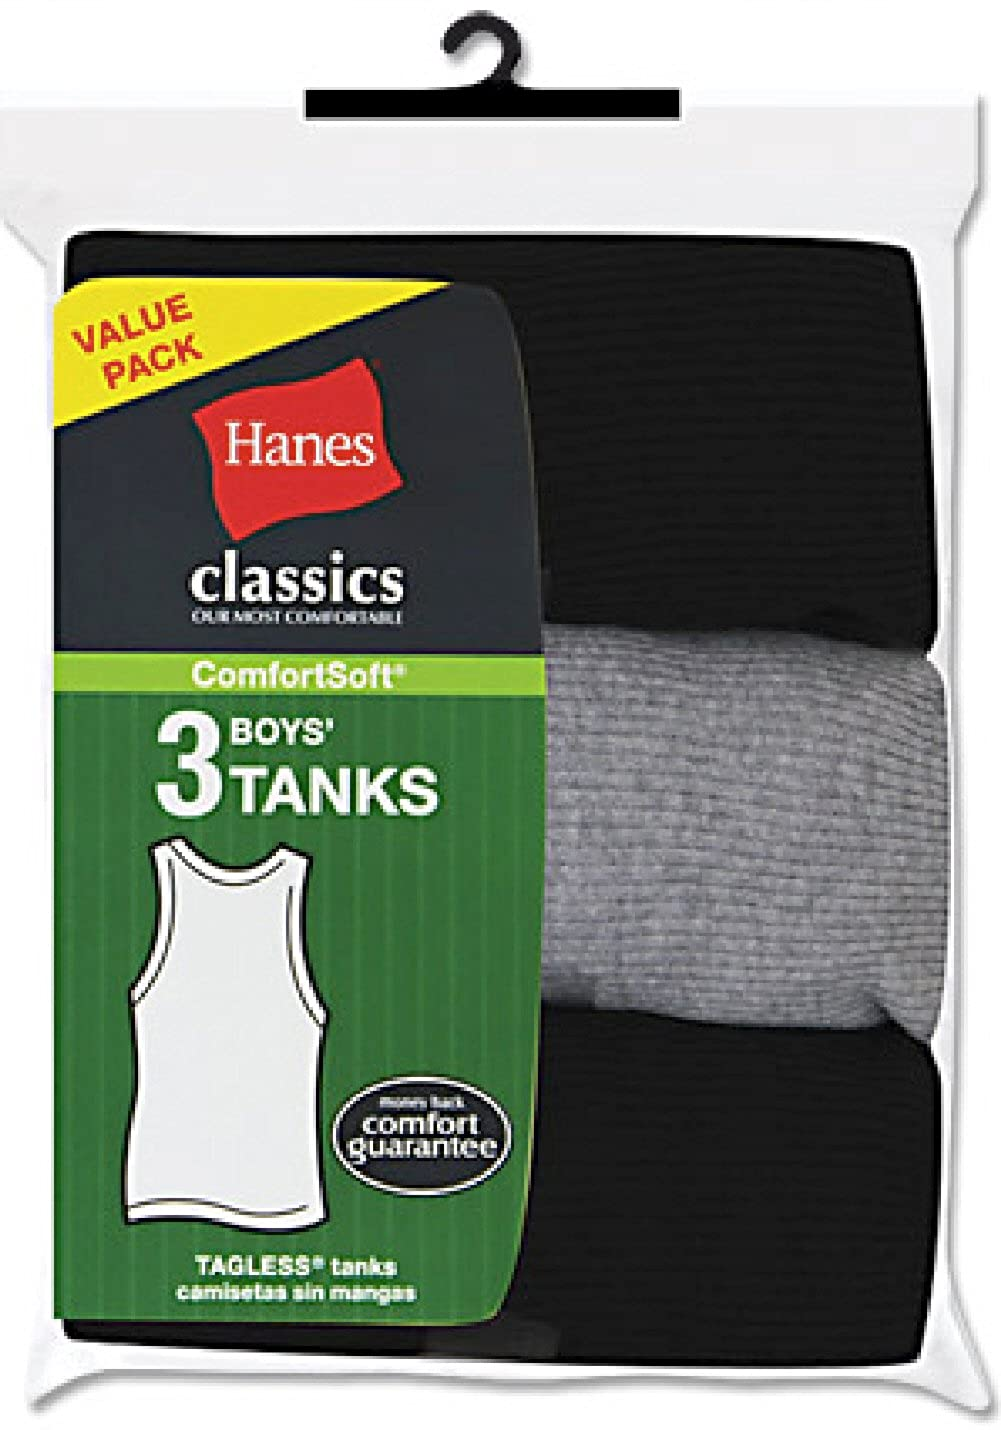 Hanes Big Boys' Tank Top (Pack of 3) Hanes underwear - Hanesbrands B392CL